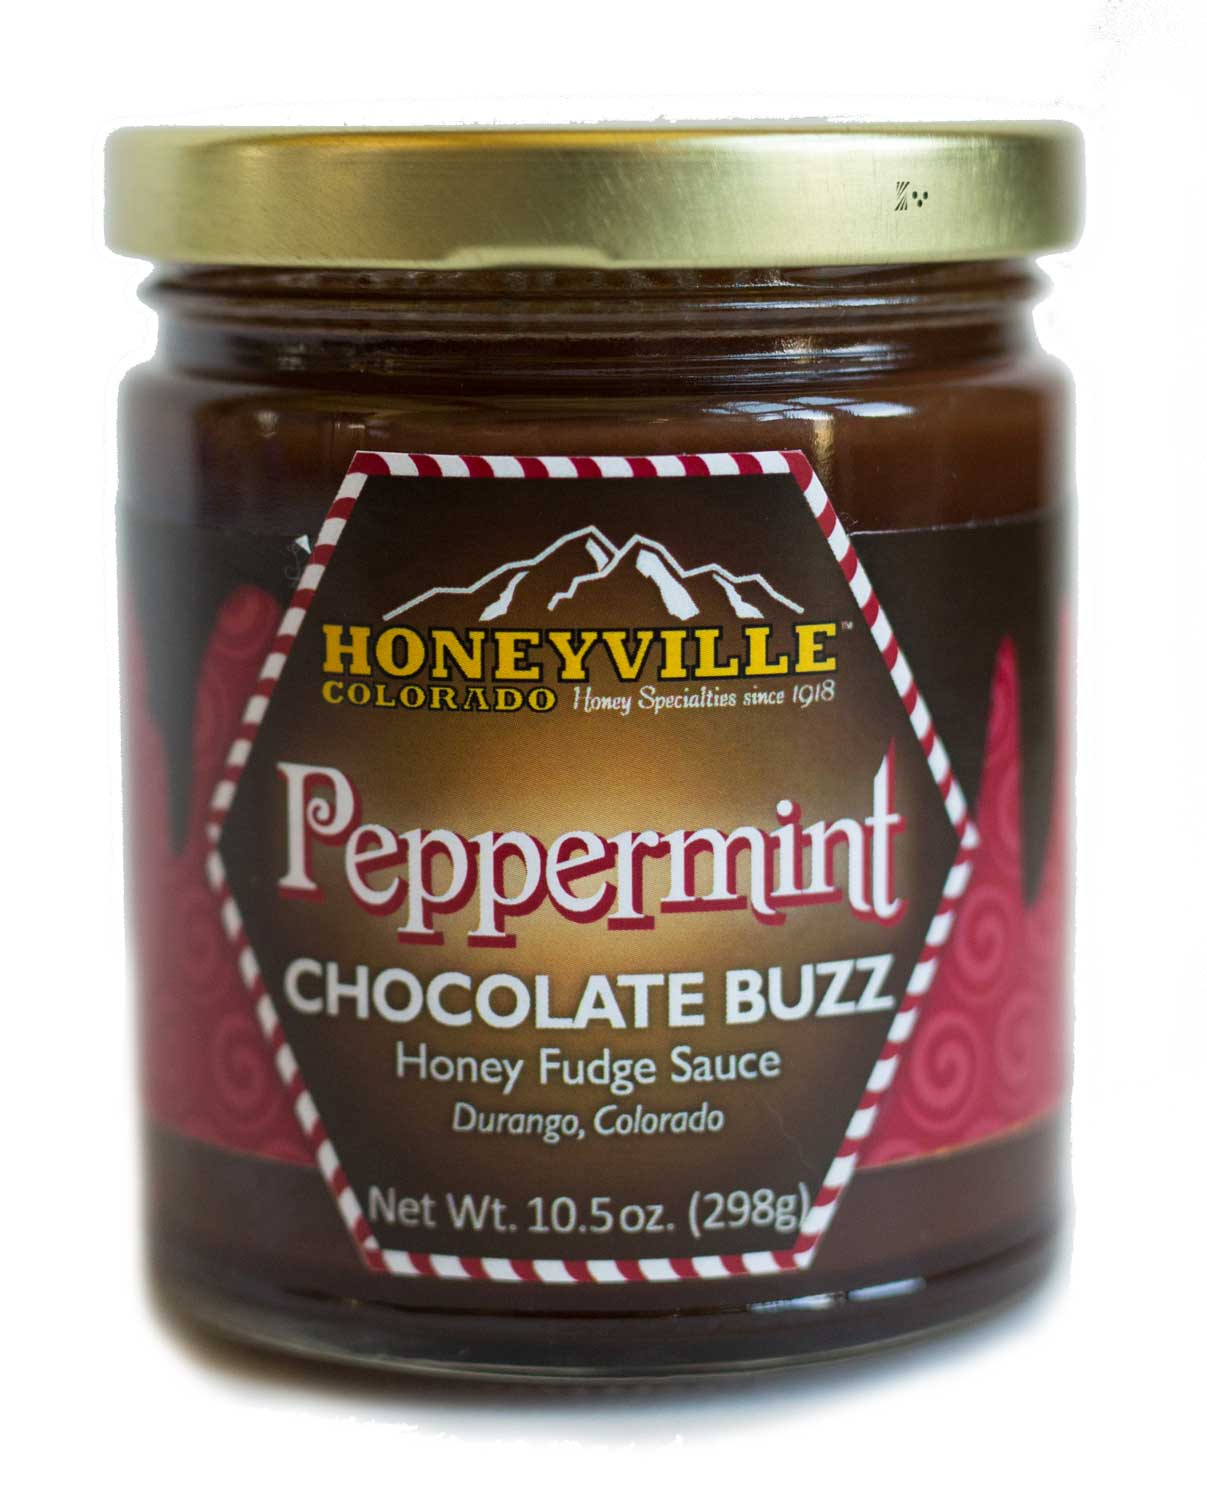 DESSERT TOPPING: PEPPERMINT CHOCOLATE BUZZ